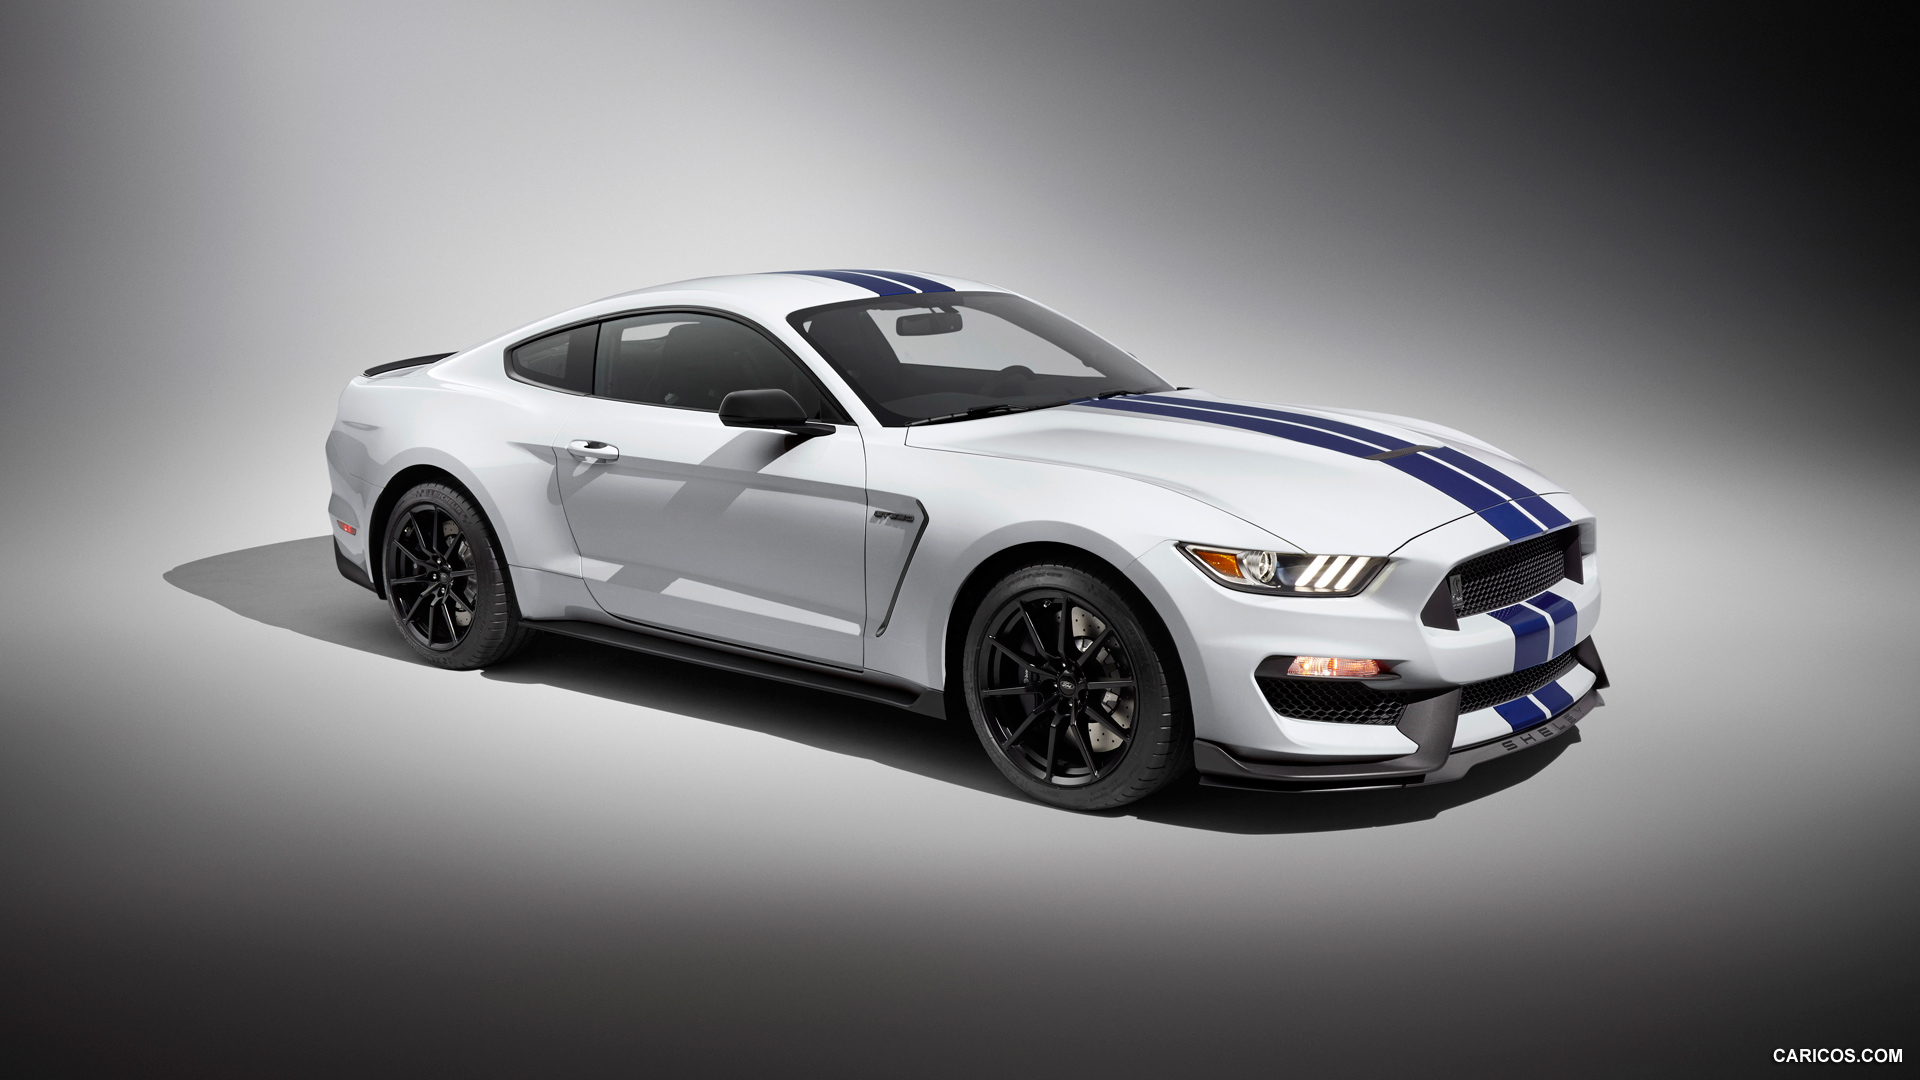 1920x1080 - Shelby Mustang GT 350 Wallpapers 22